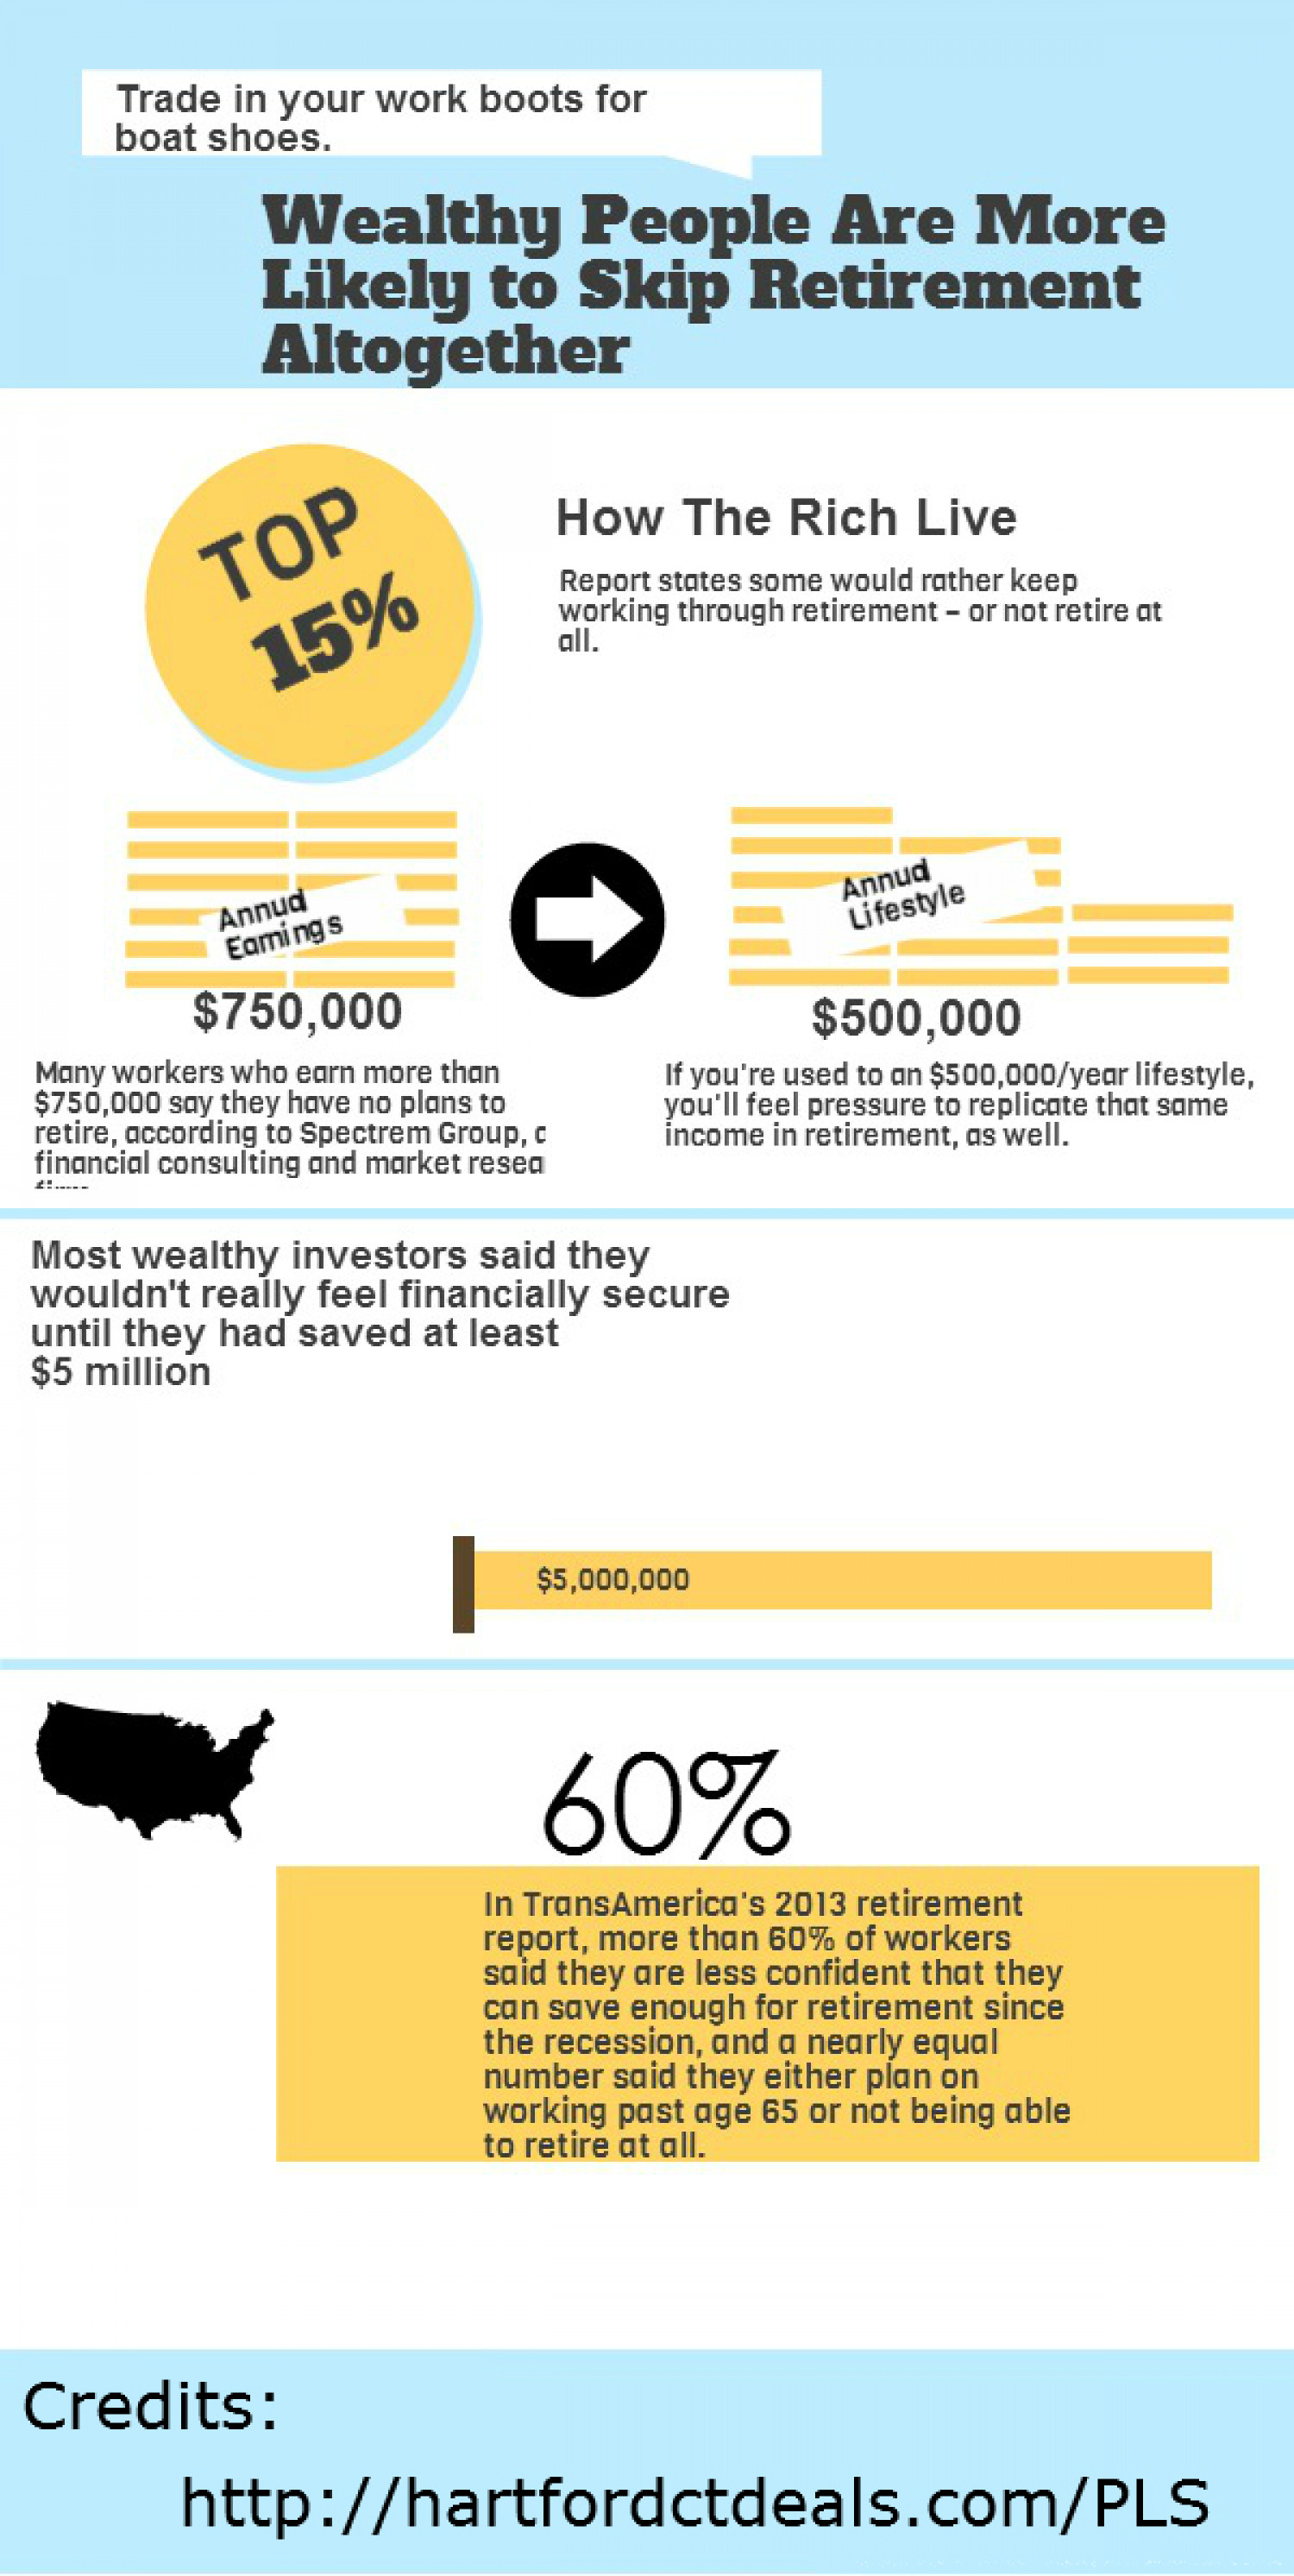 Wealthy People Are More Likley To Skip Retirement! Infographic